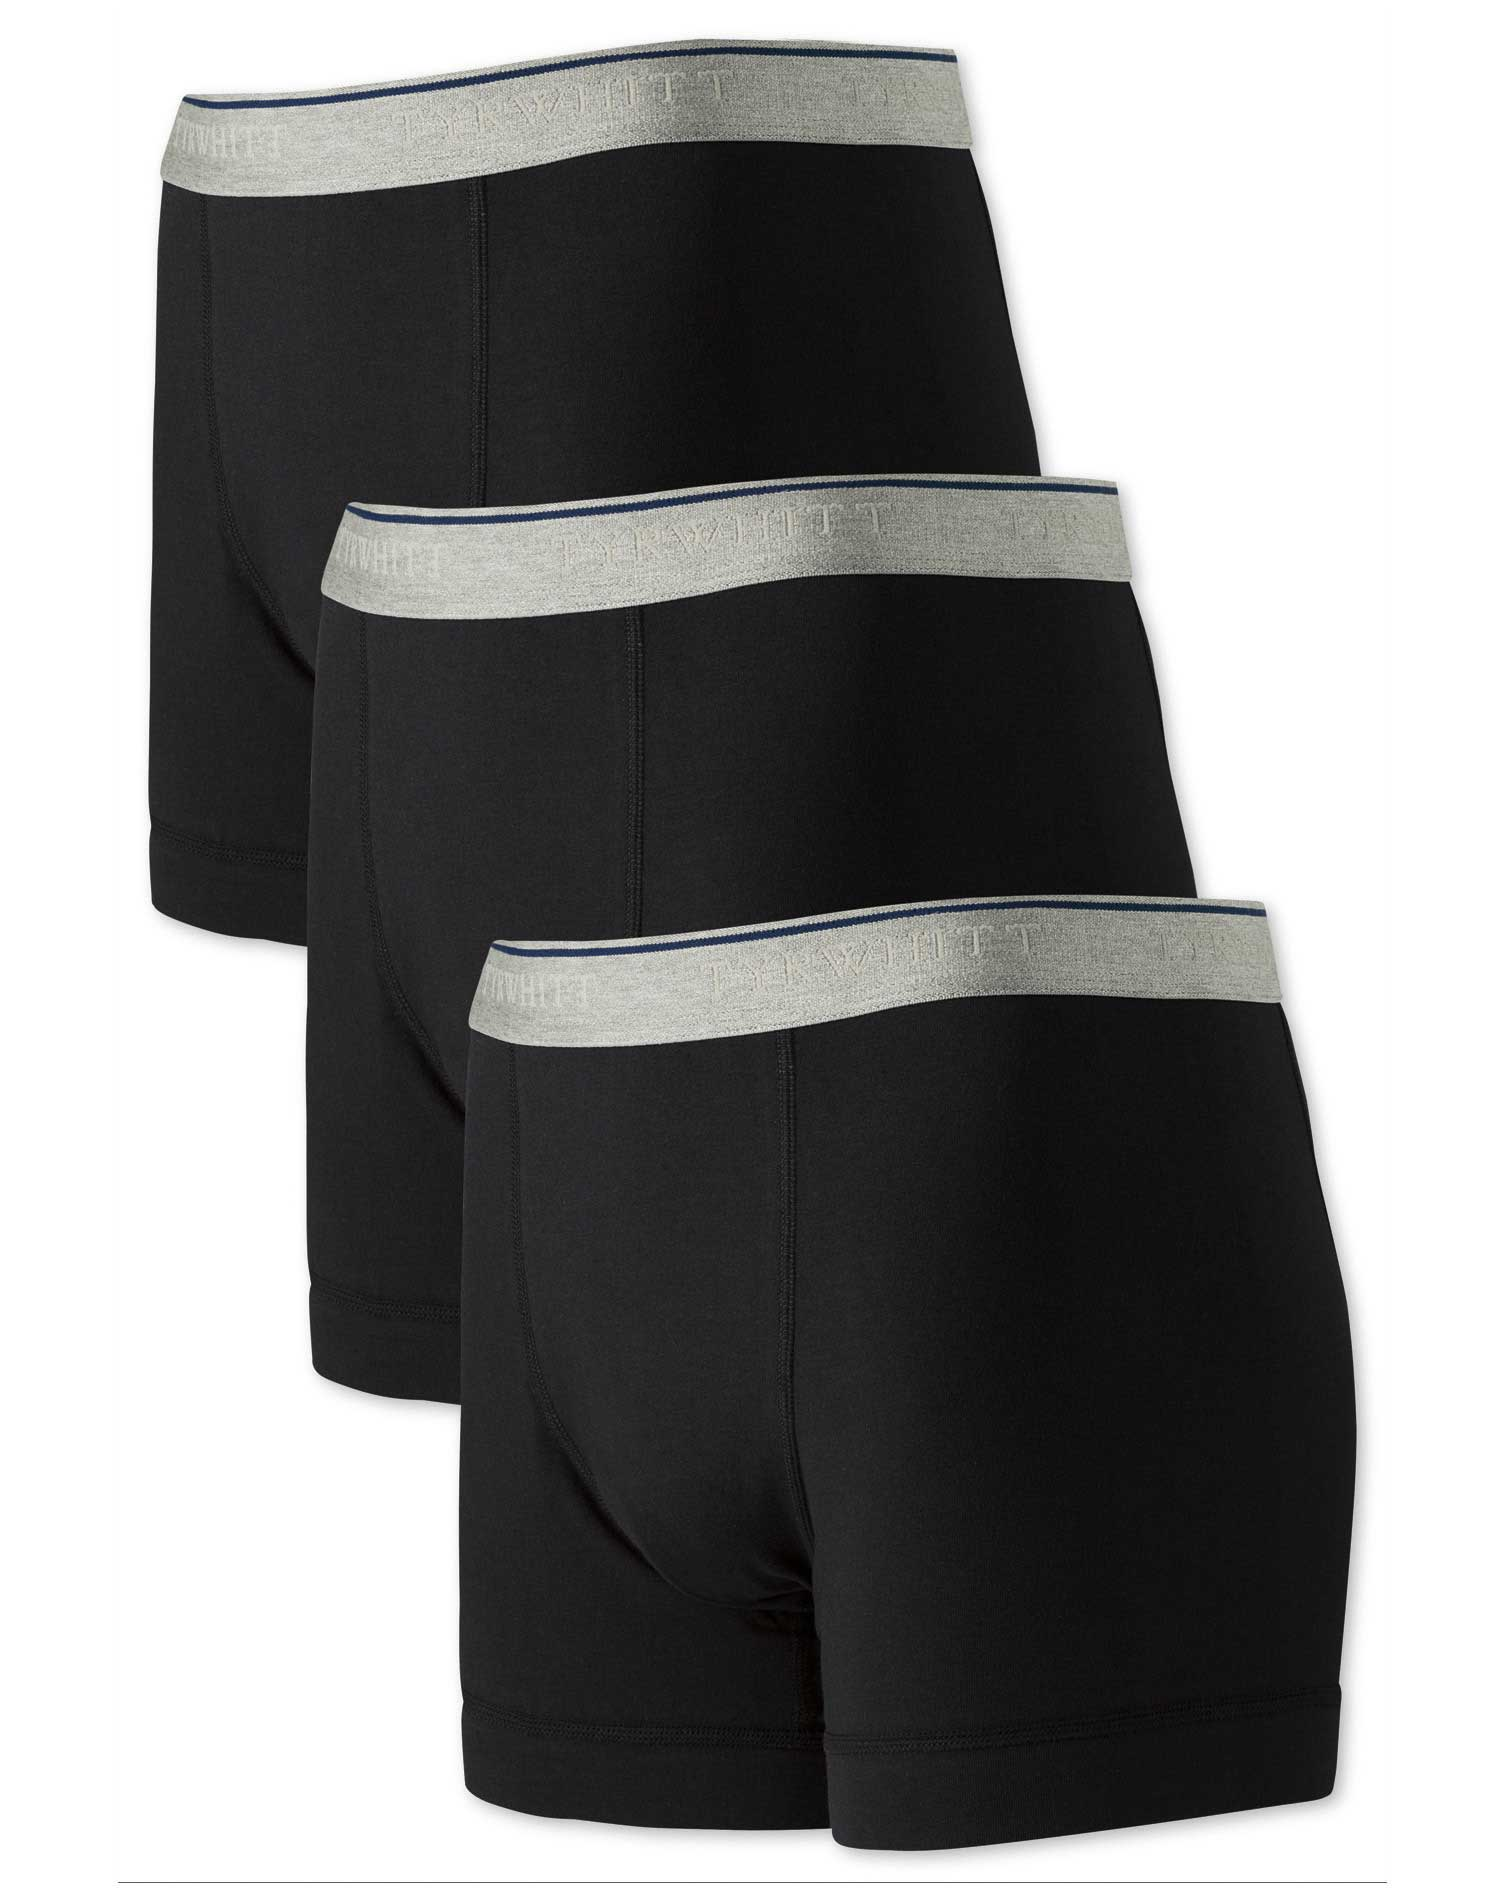 black jersey 3 pack trunks size xs by charles tyrwhitt